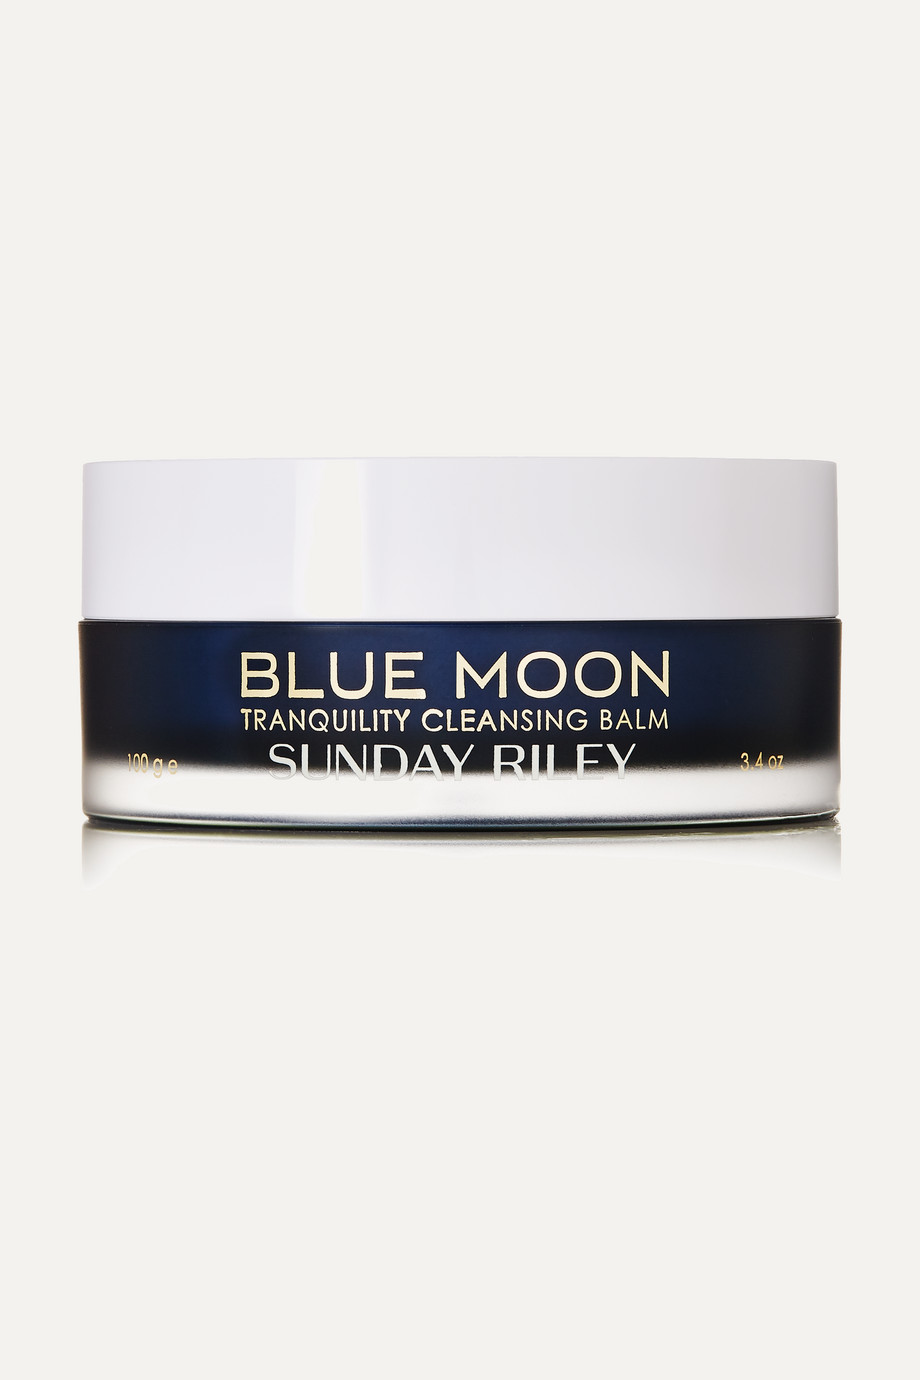 Blue Moon Tranquility Cleansing Balm, 100ml, by Sunday Riley